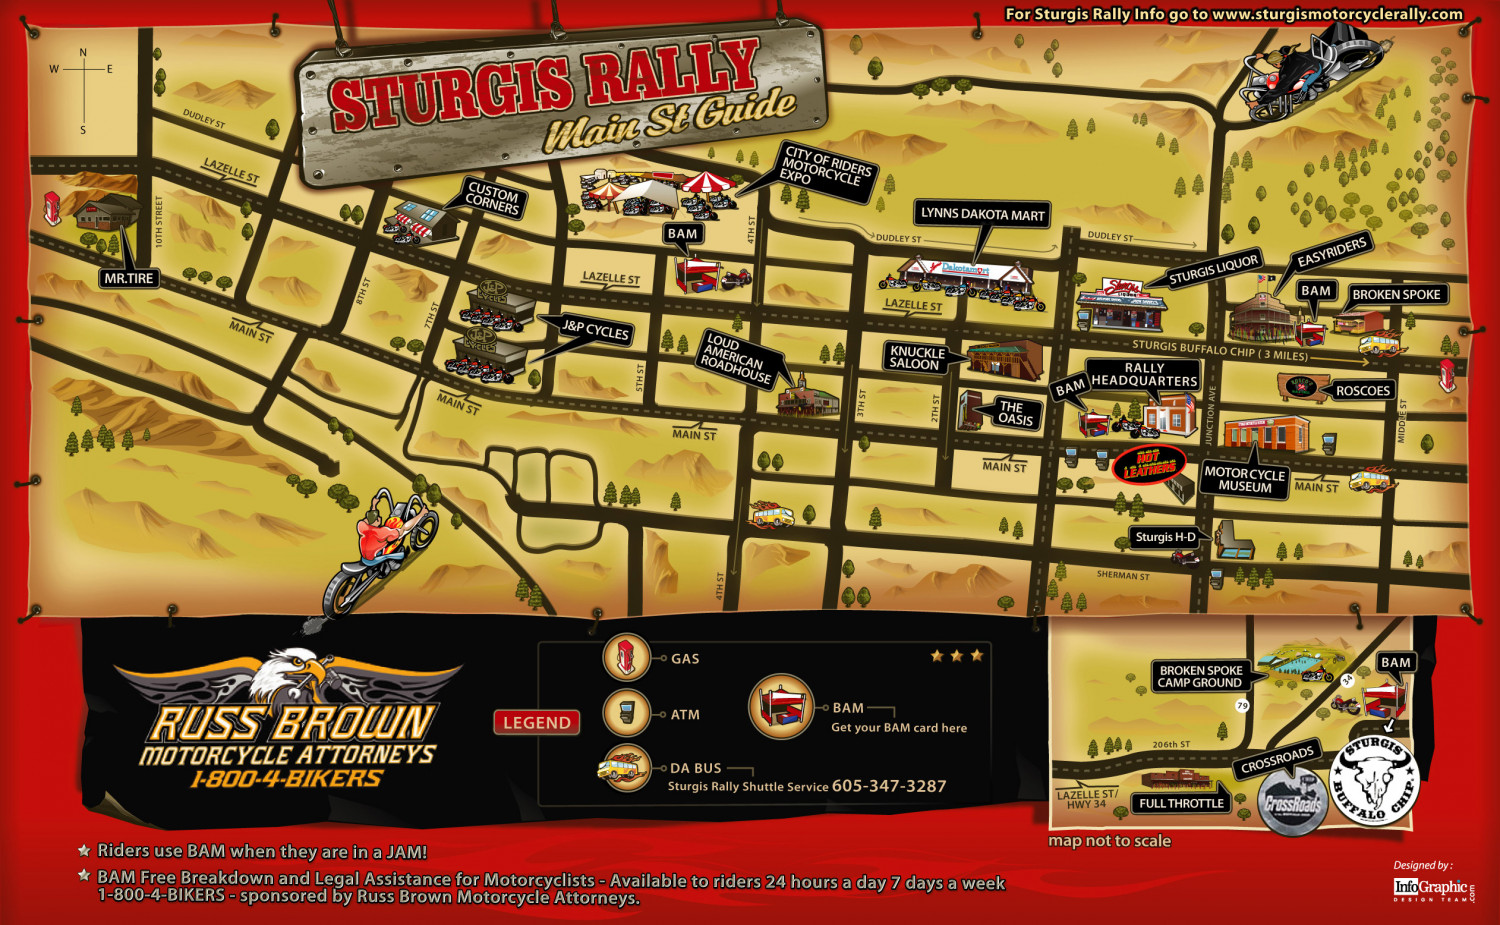 Sturgis Motorcycle Rally Main St Guide Infographic